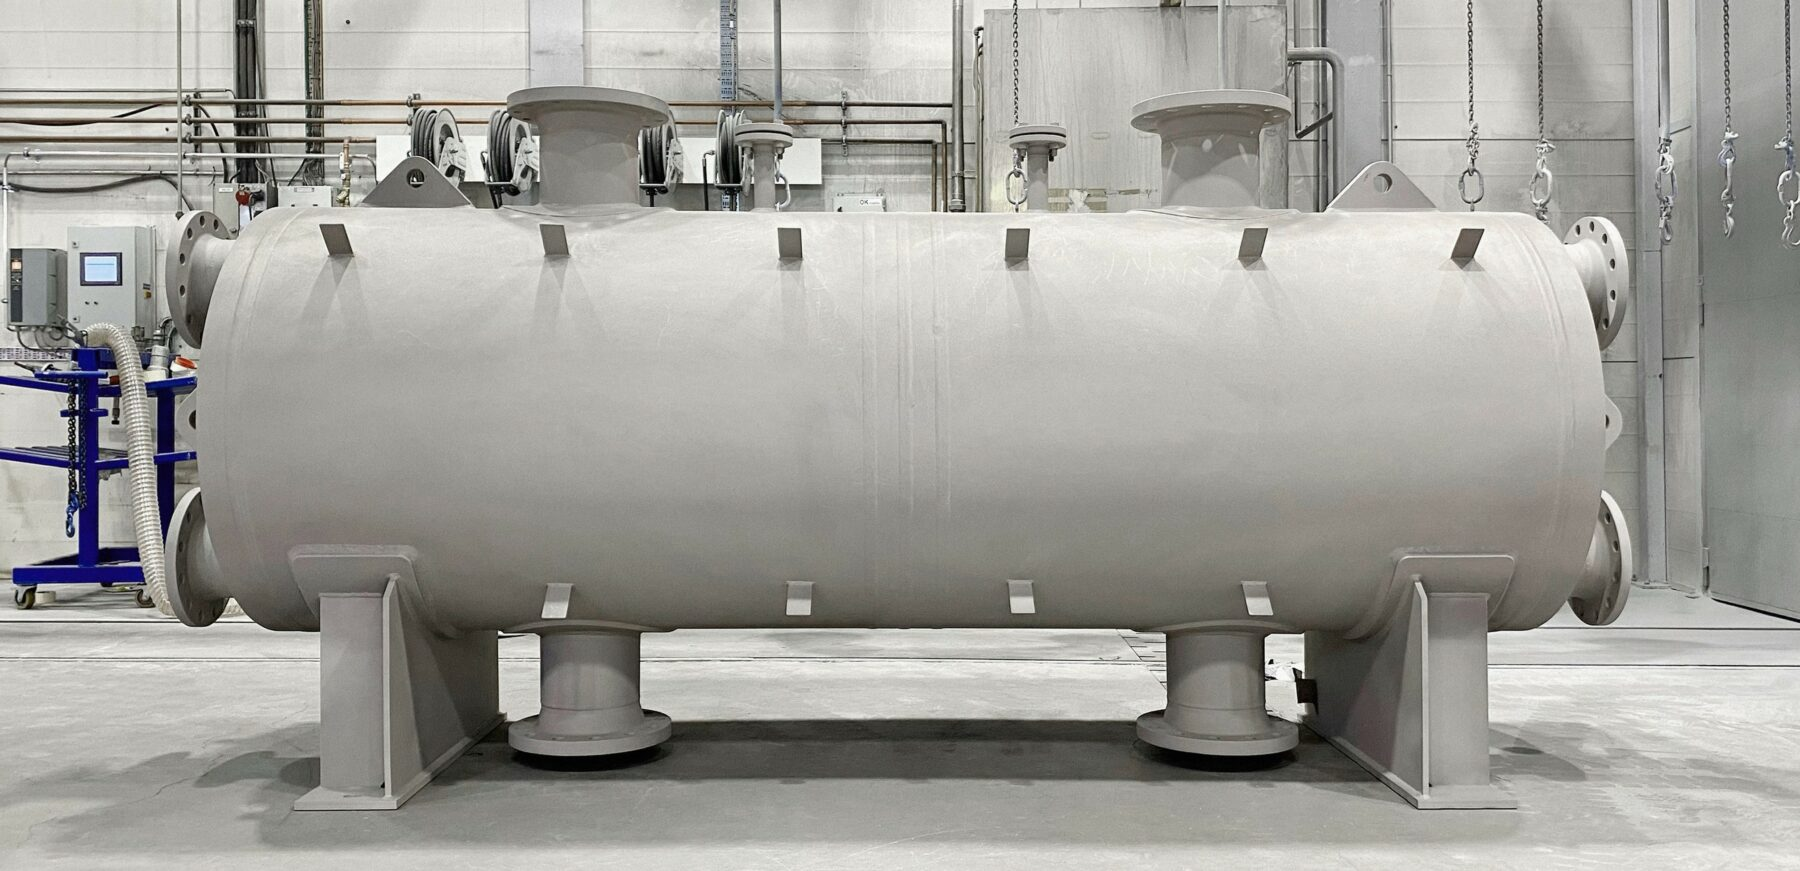 Heat exchangers for the chemical industry